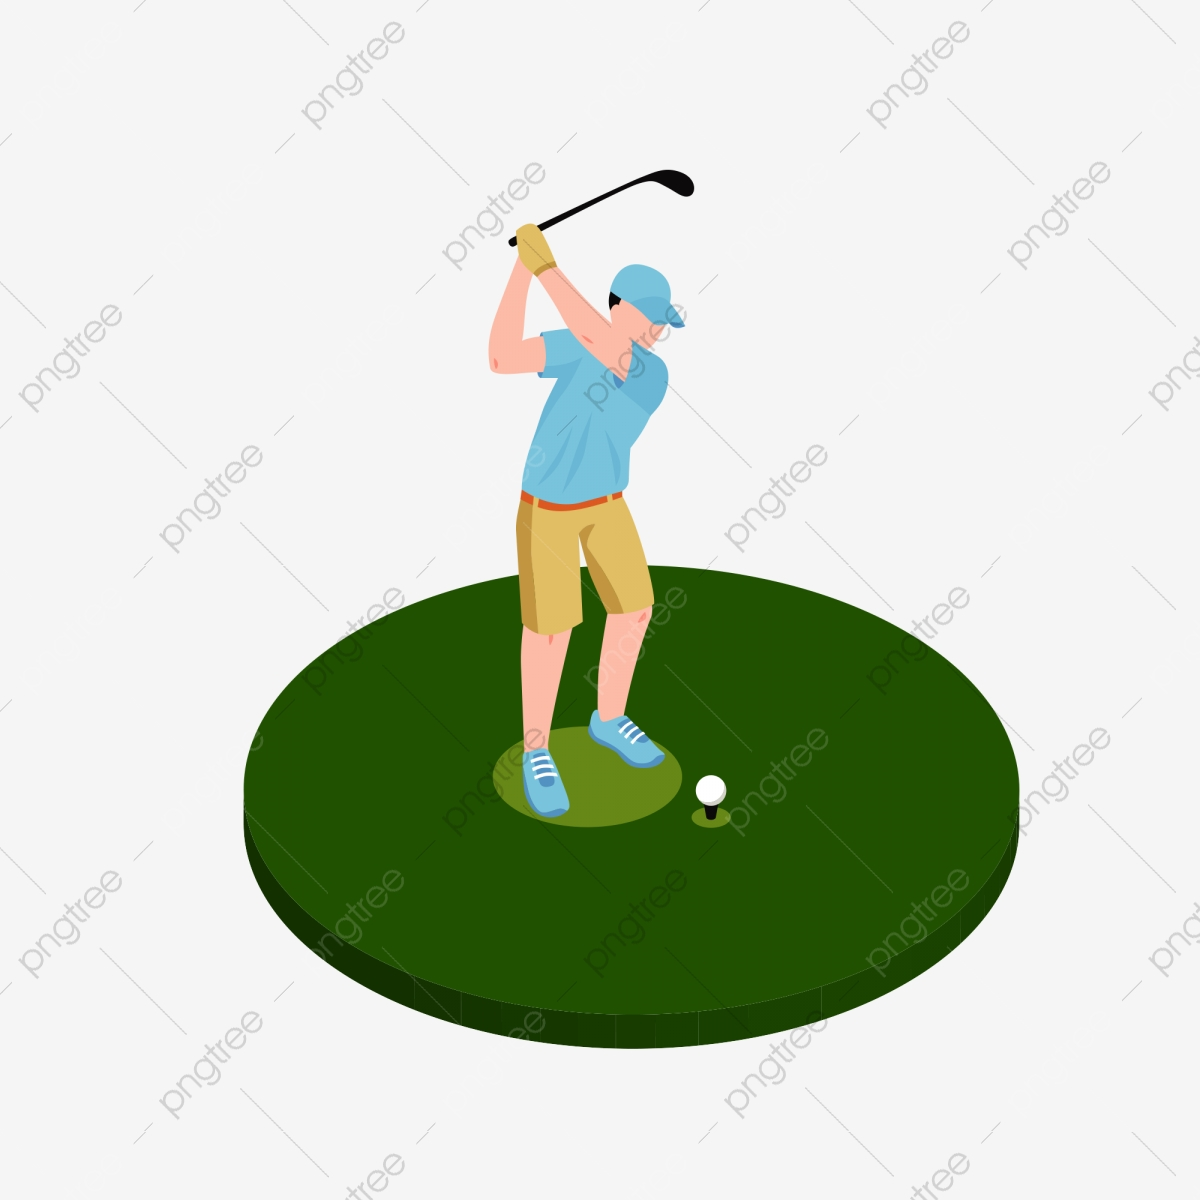 Golf, Golf Clipart, Movement PNG Transparent Clipart Image and PSD.